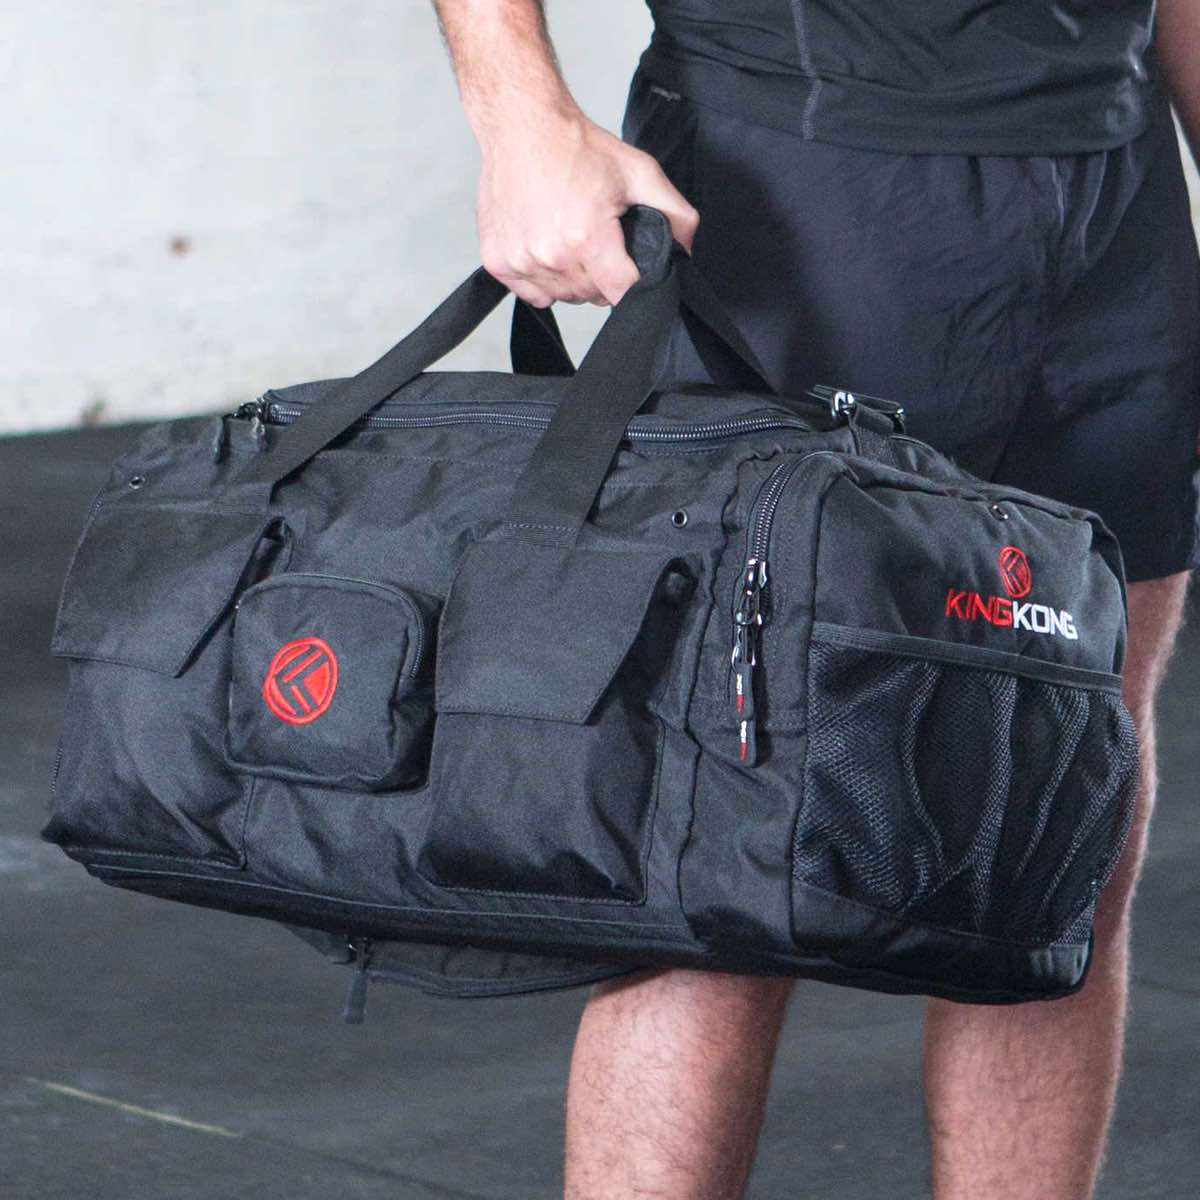 4425830f38d4 king-kong-bag-crossfit-gym-bag-black-athlete- ...